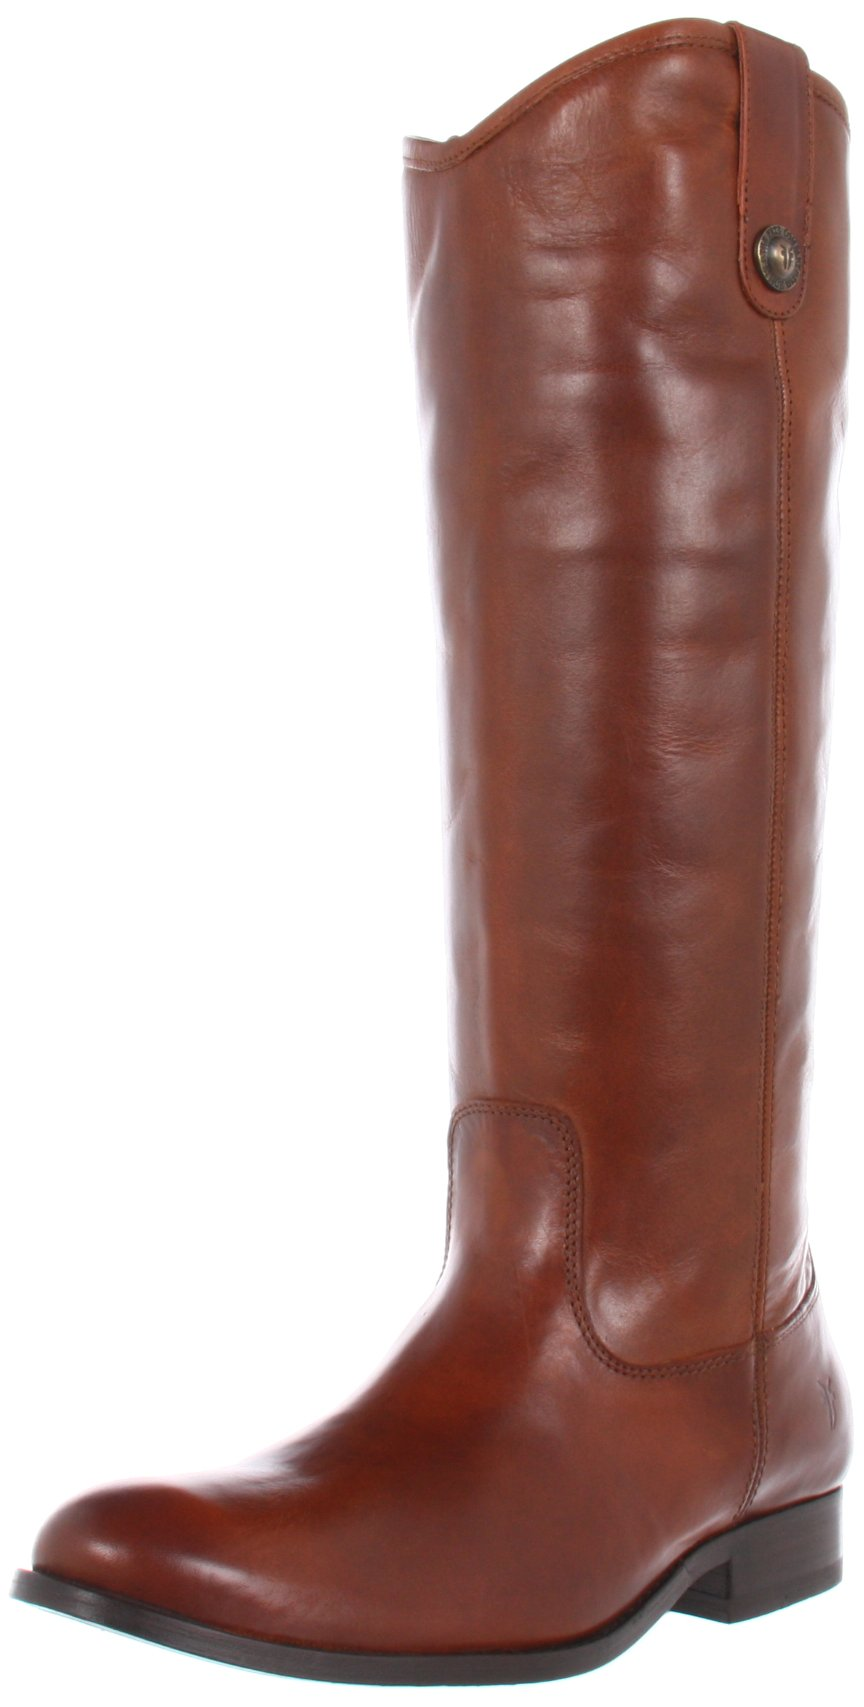 FRYE Women's Melissa Button Boot, Cognac Smooth Vintage Leather, 7.5 M US by FRYE